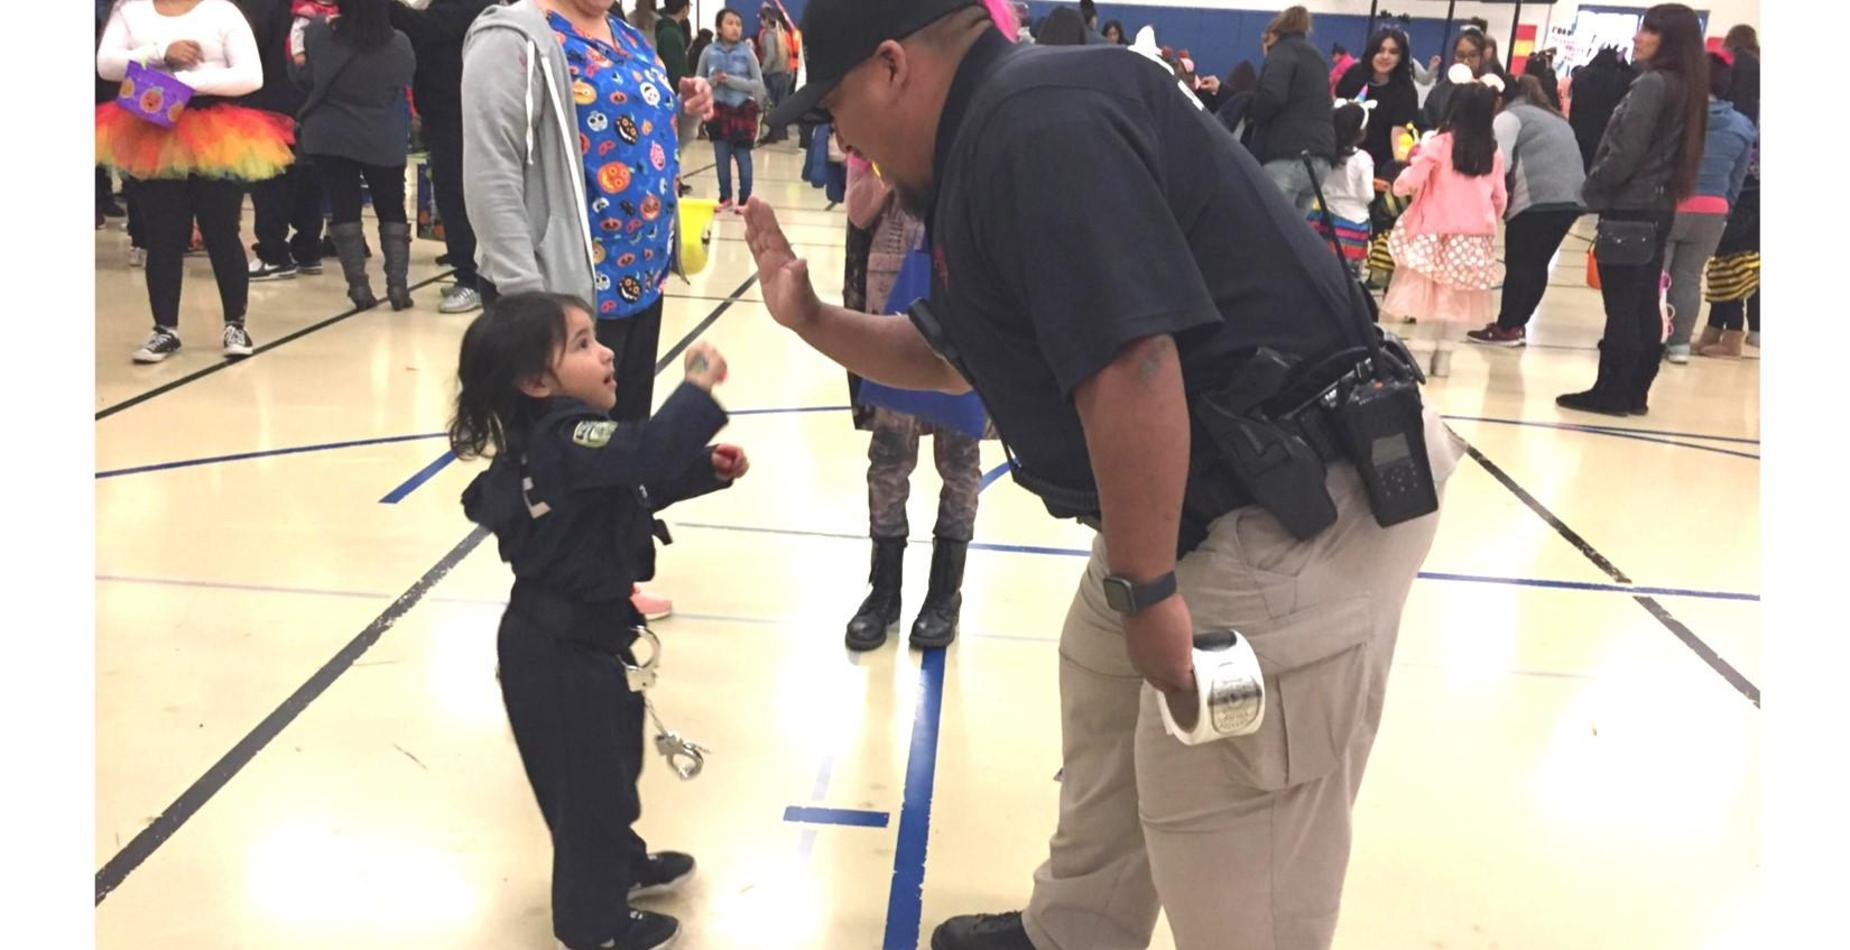 a young child dressed up as a police officer giving  a high five to our school district onsite officer